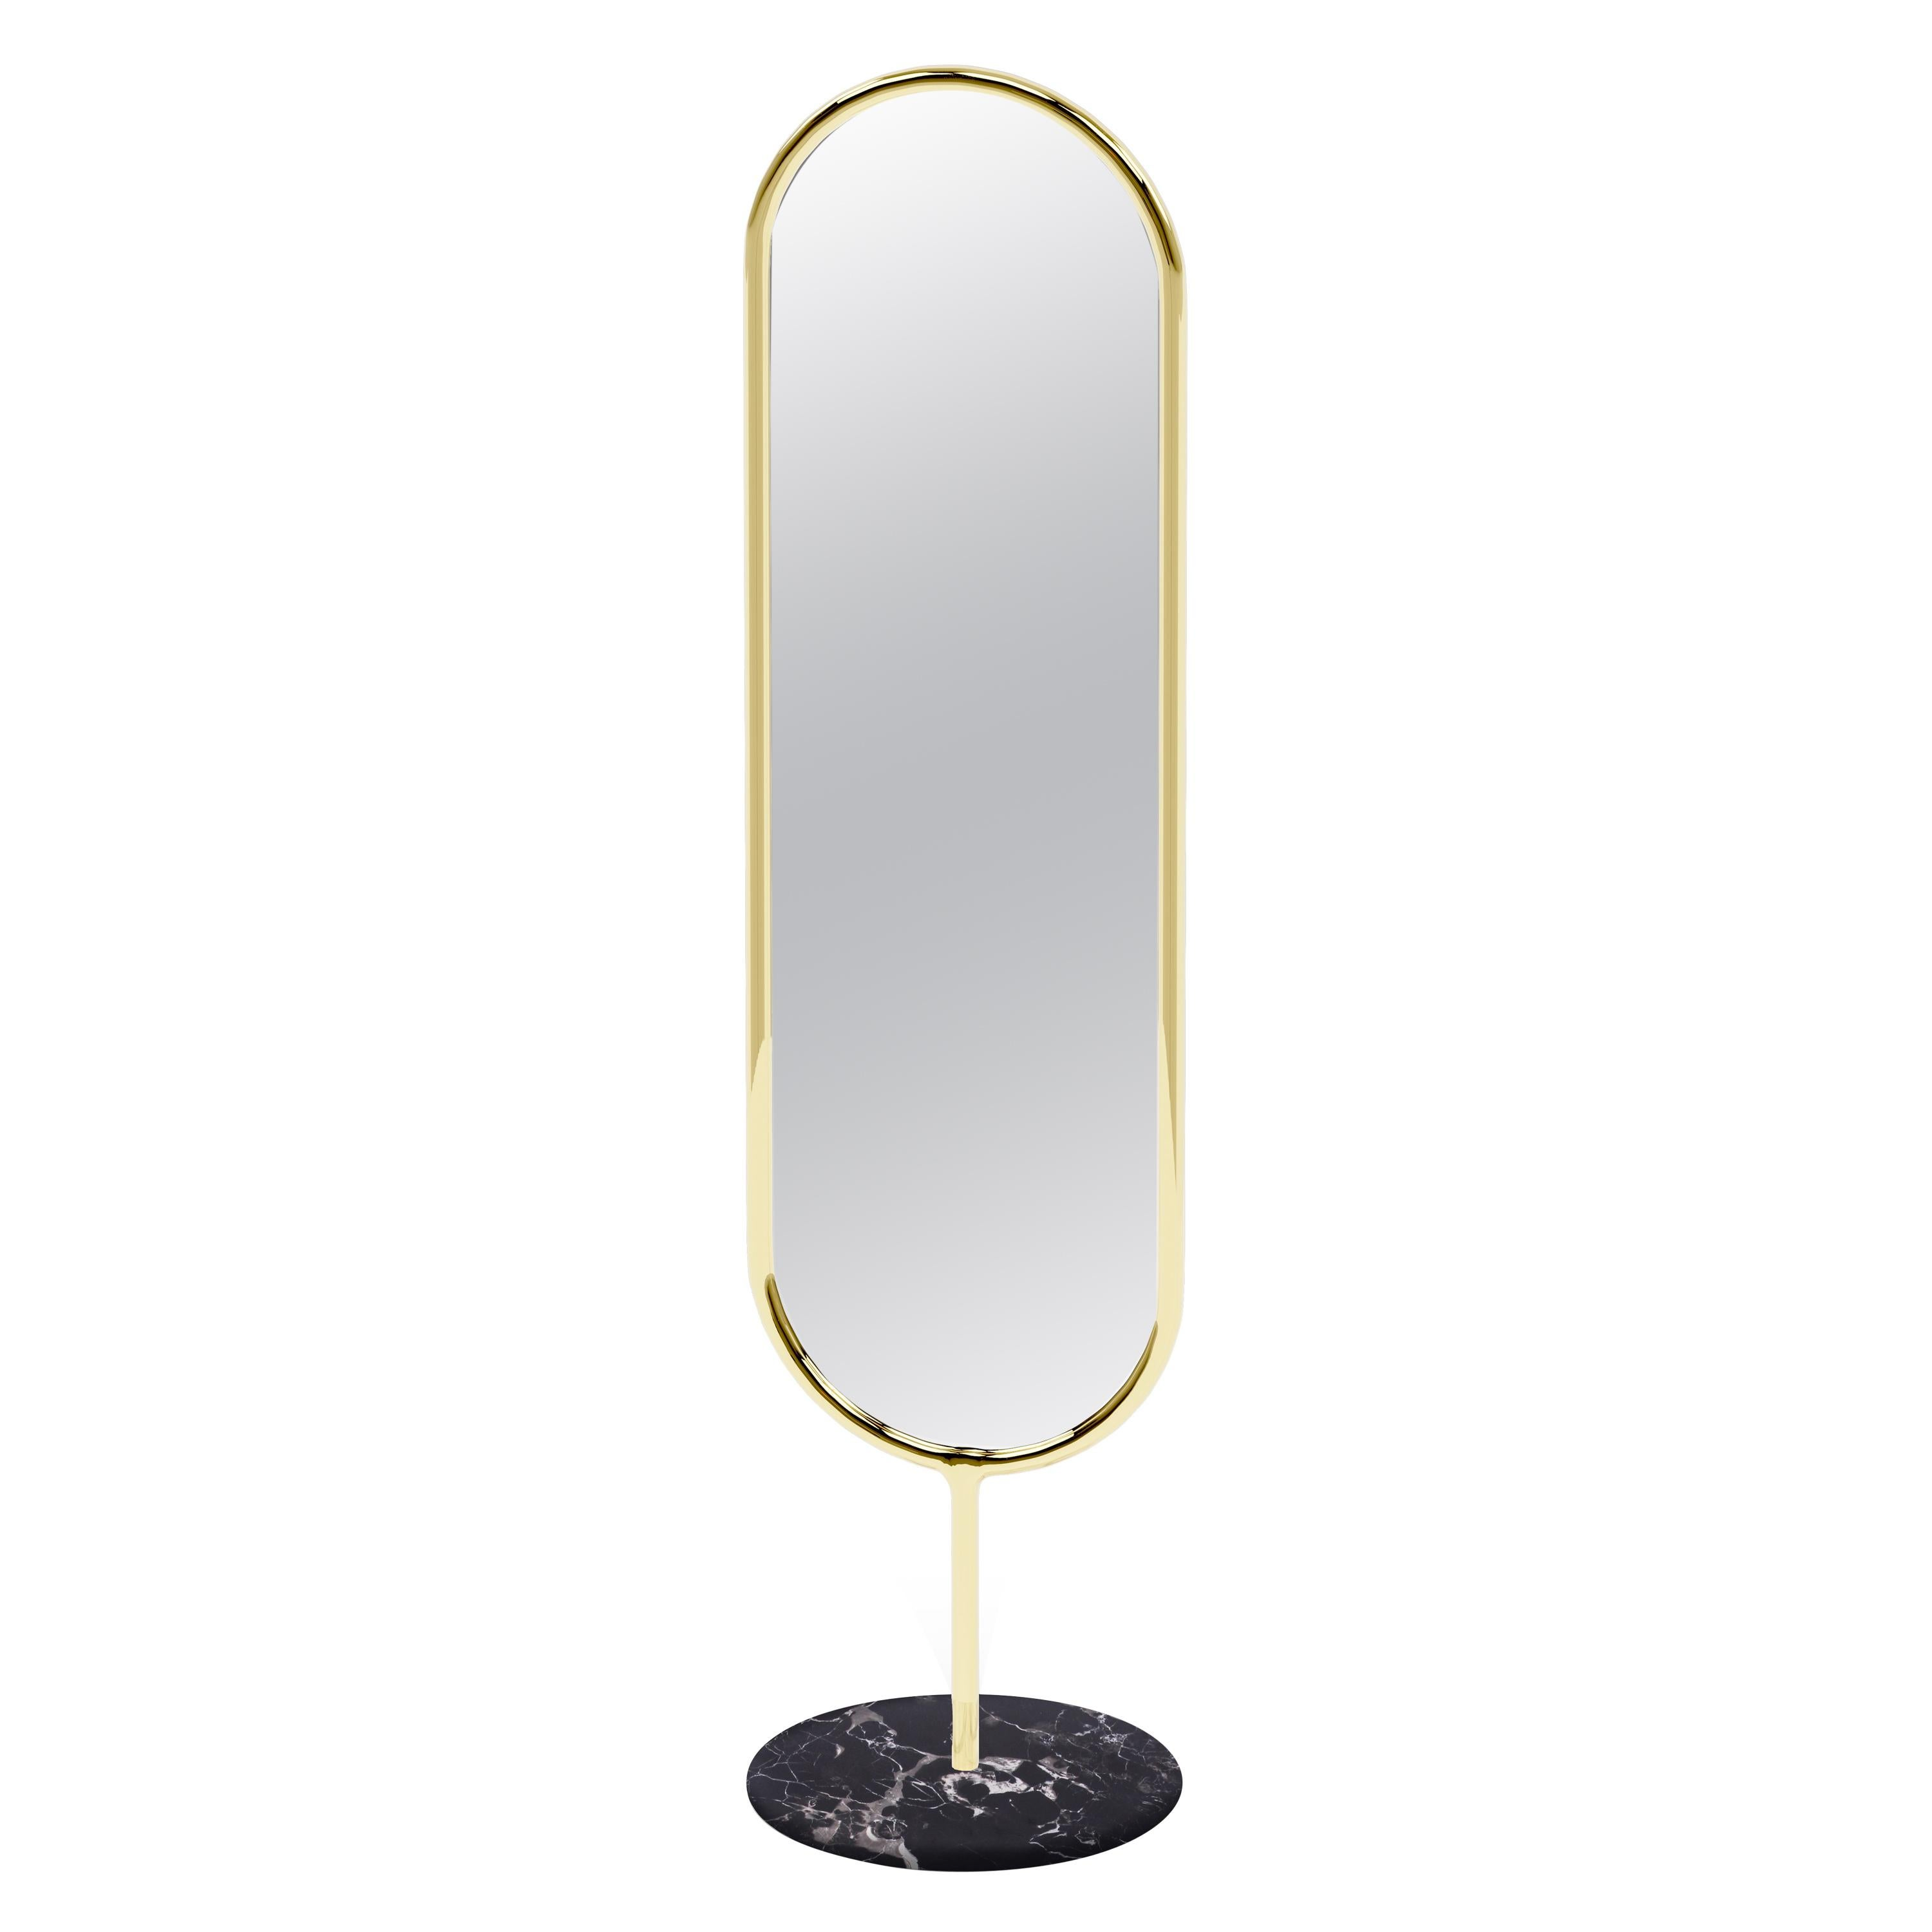 Polished Brass and Nero Marquina Marble Floor Mirror, Royal Stranger